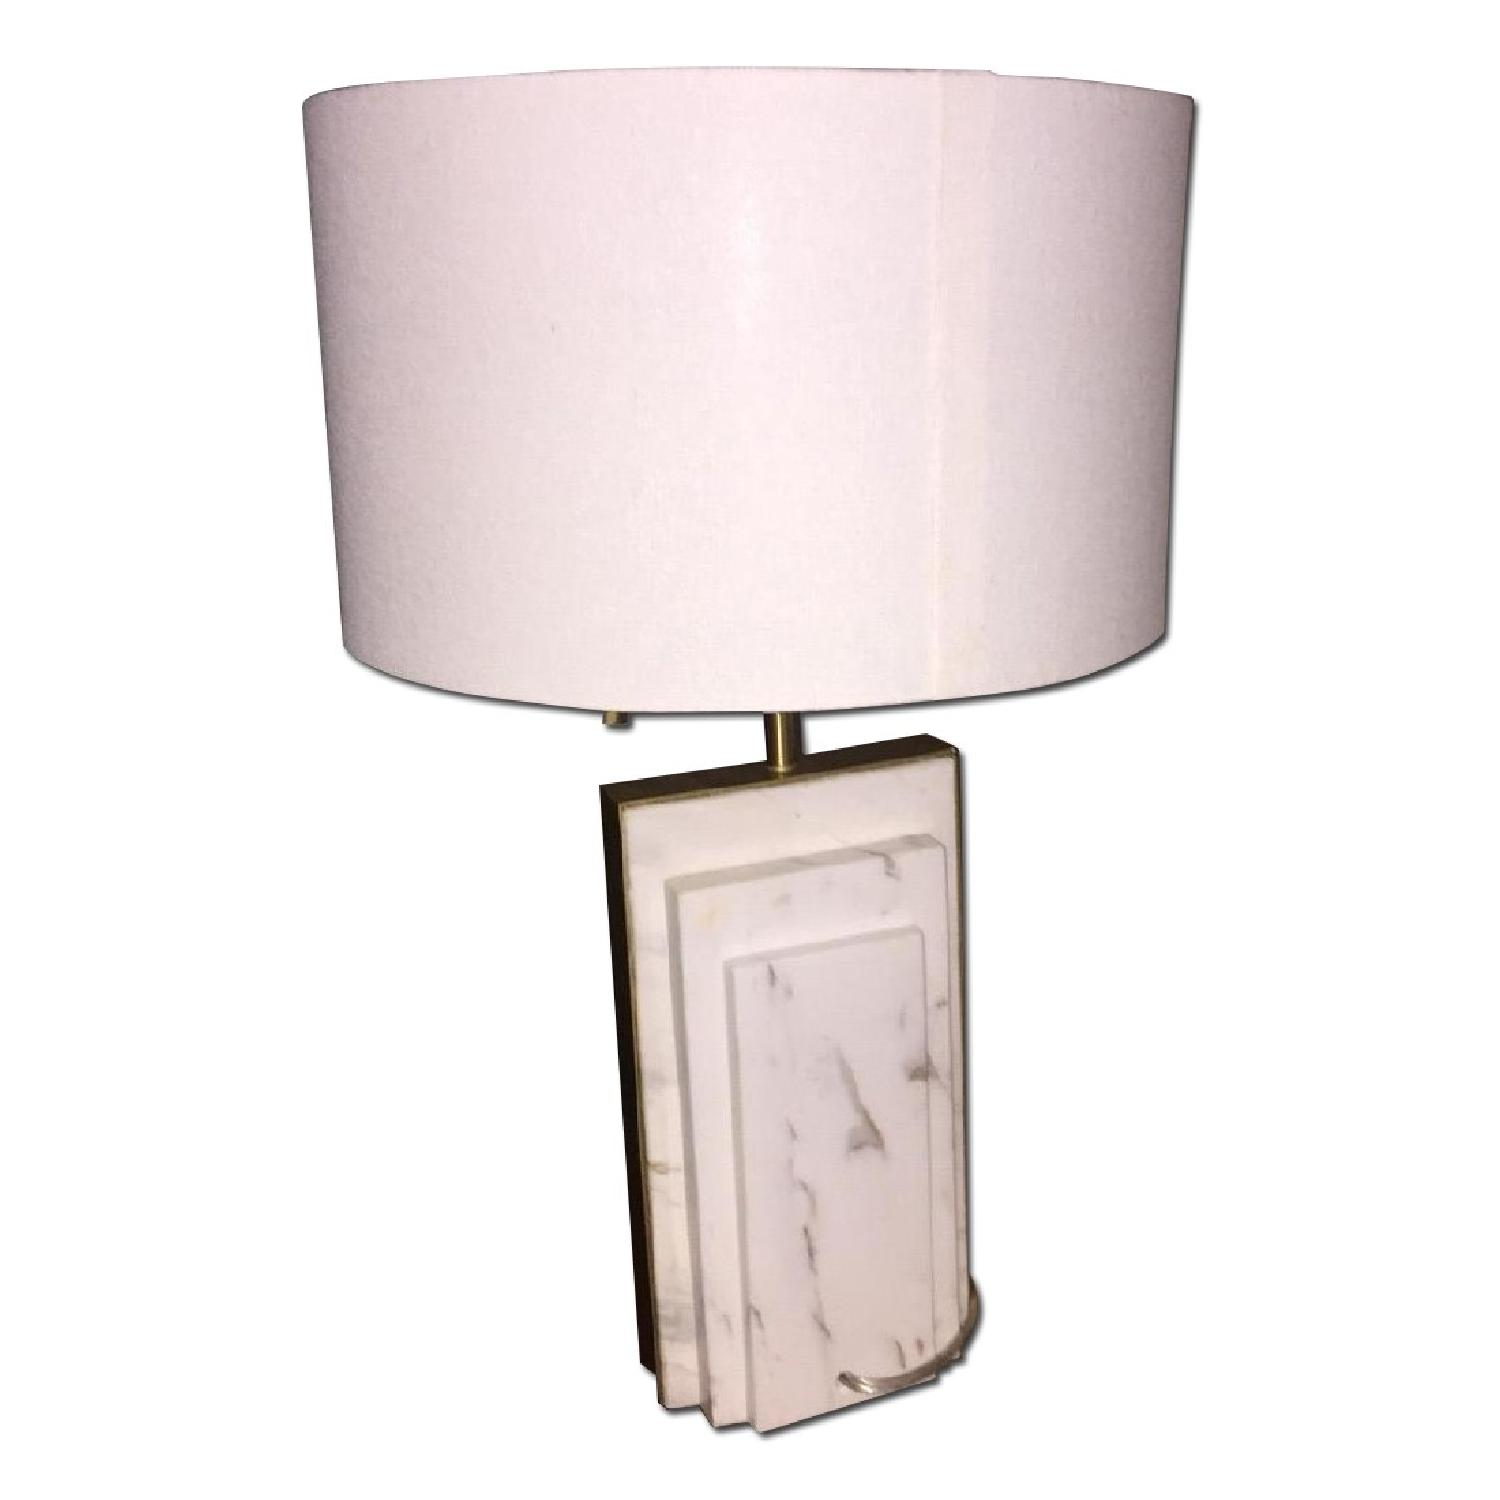 West Elm Deco Style Marble & Brass Table Lamp - image-0